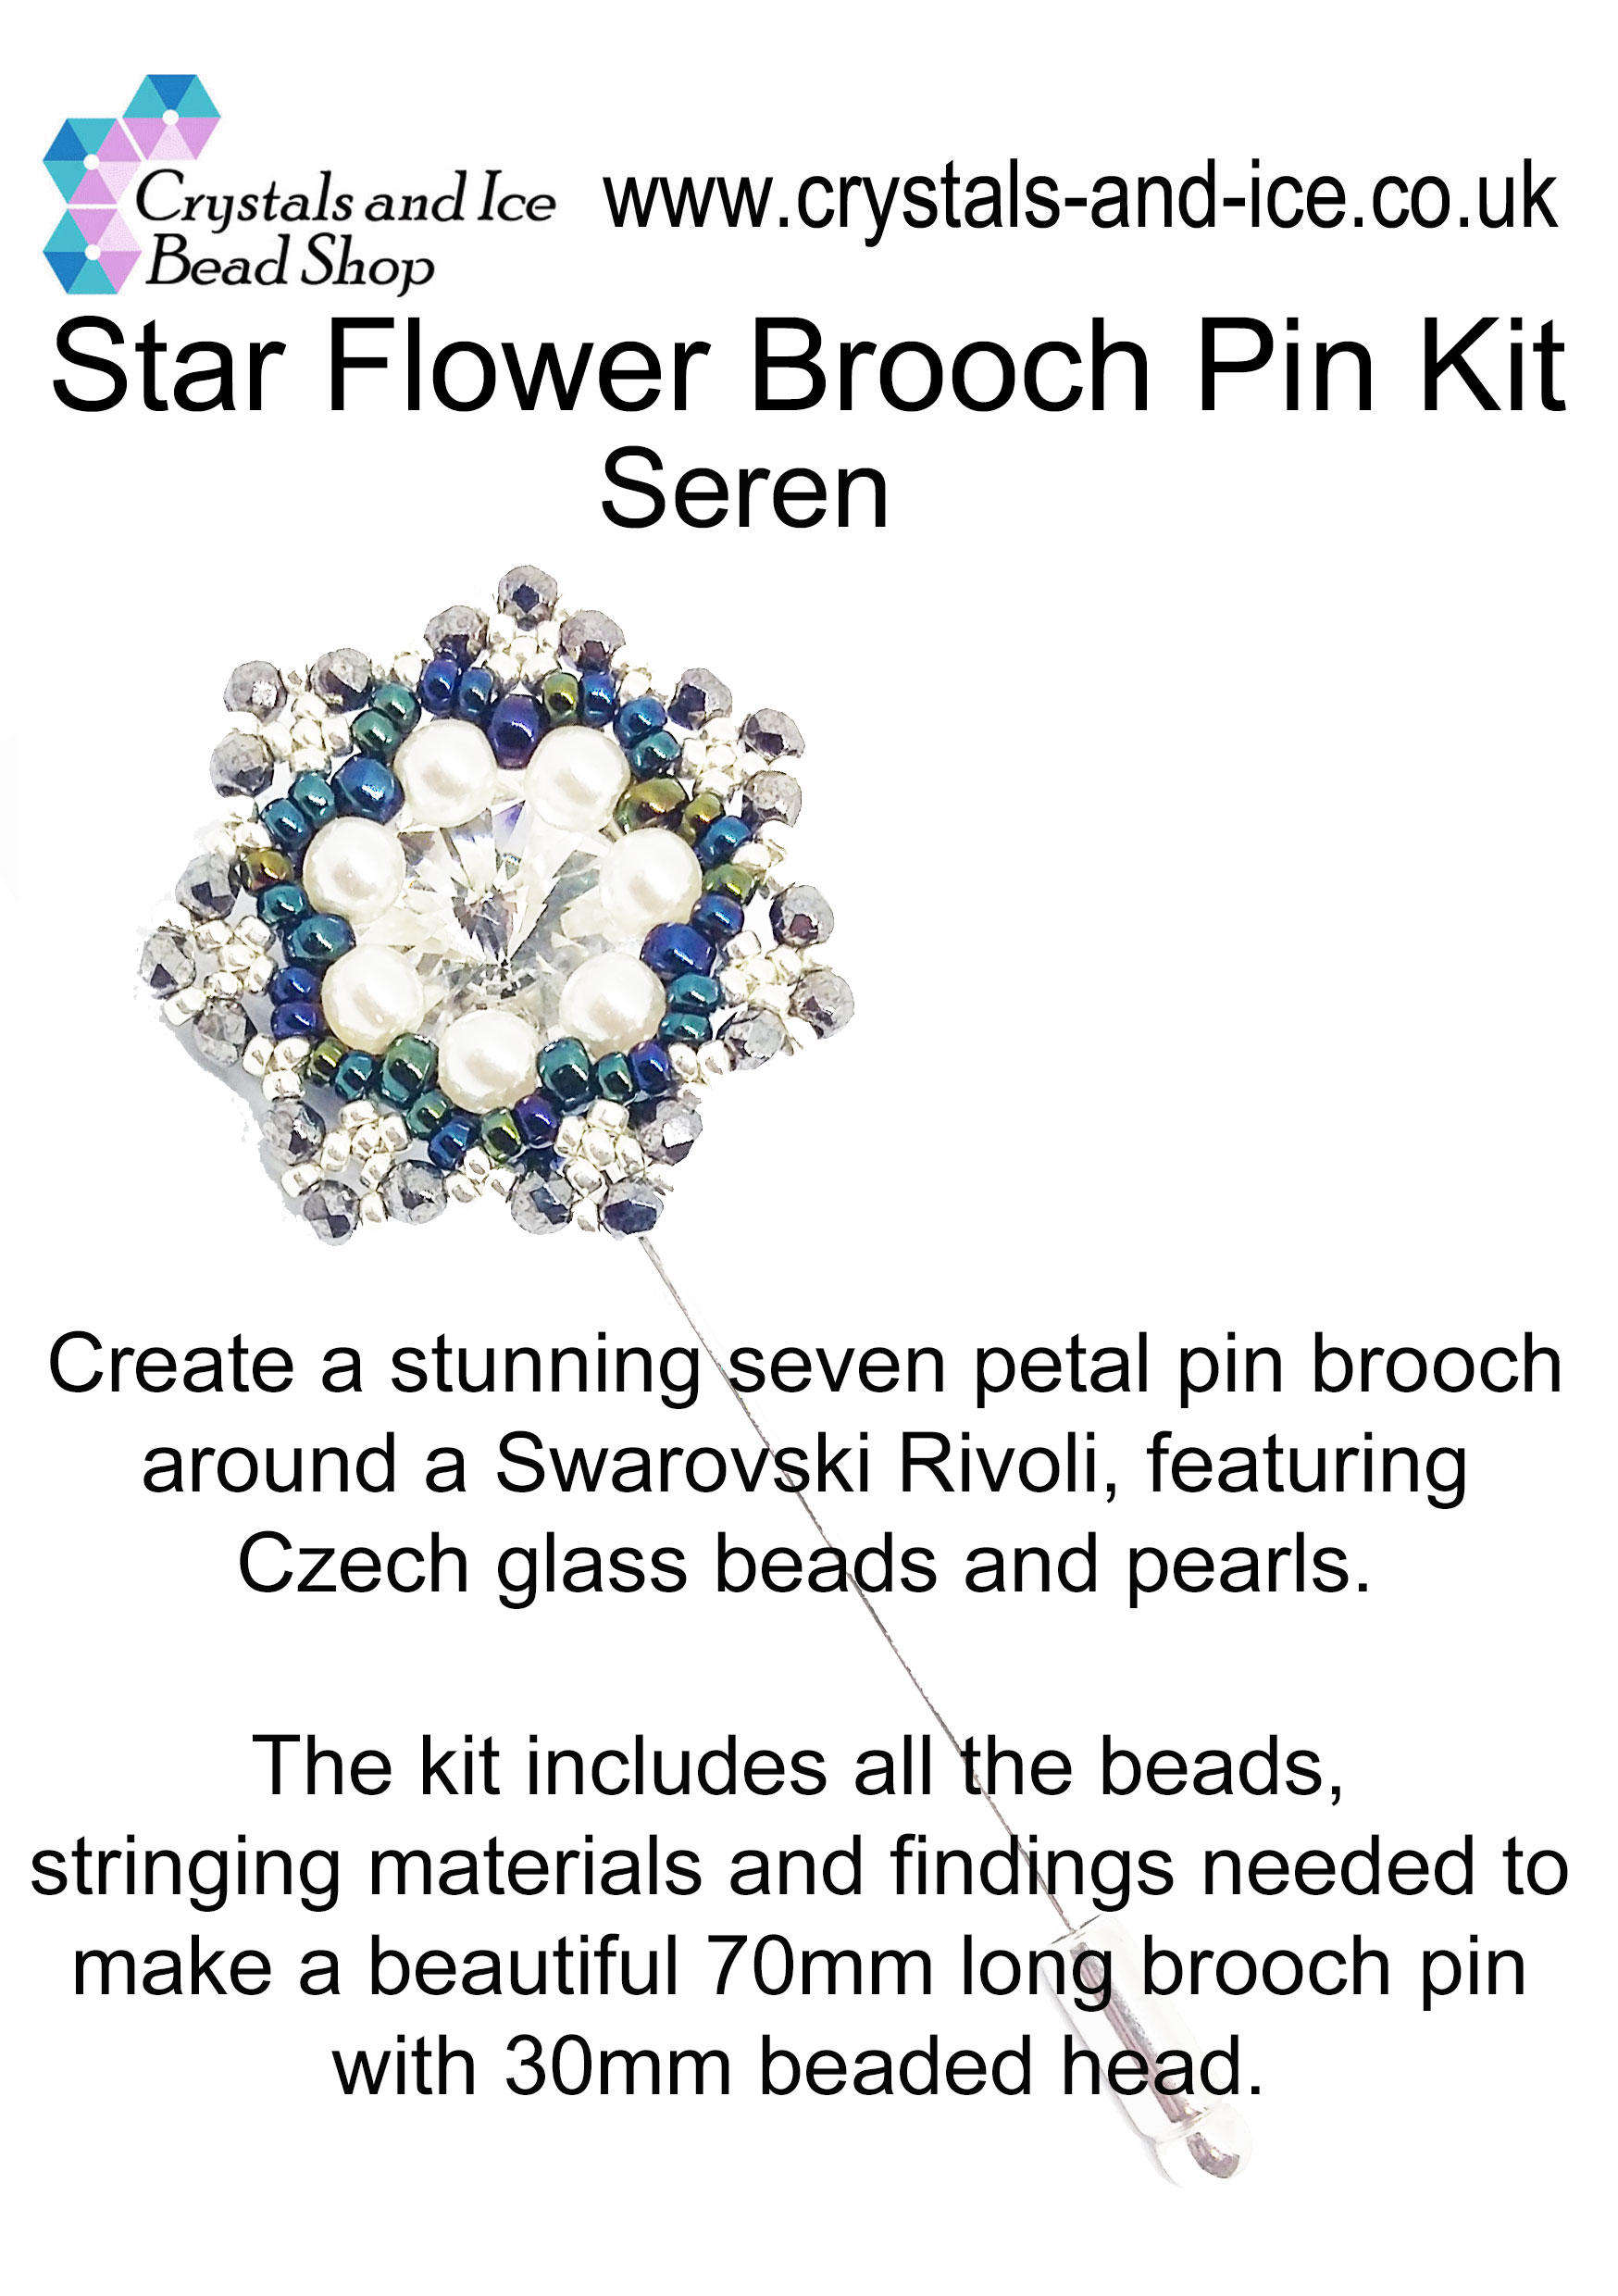 Star Flower Brooch Pin Kit - Seren